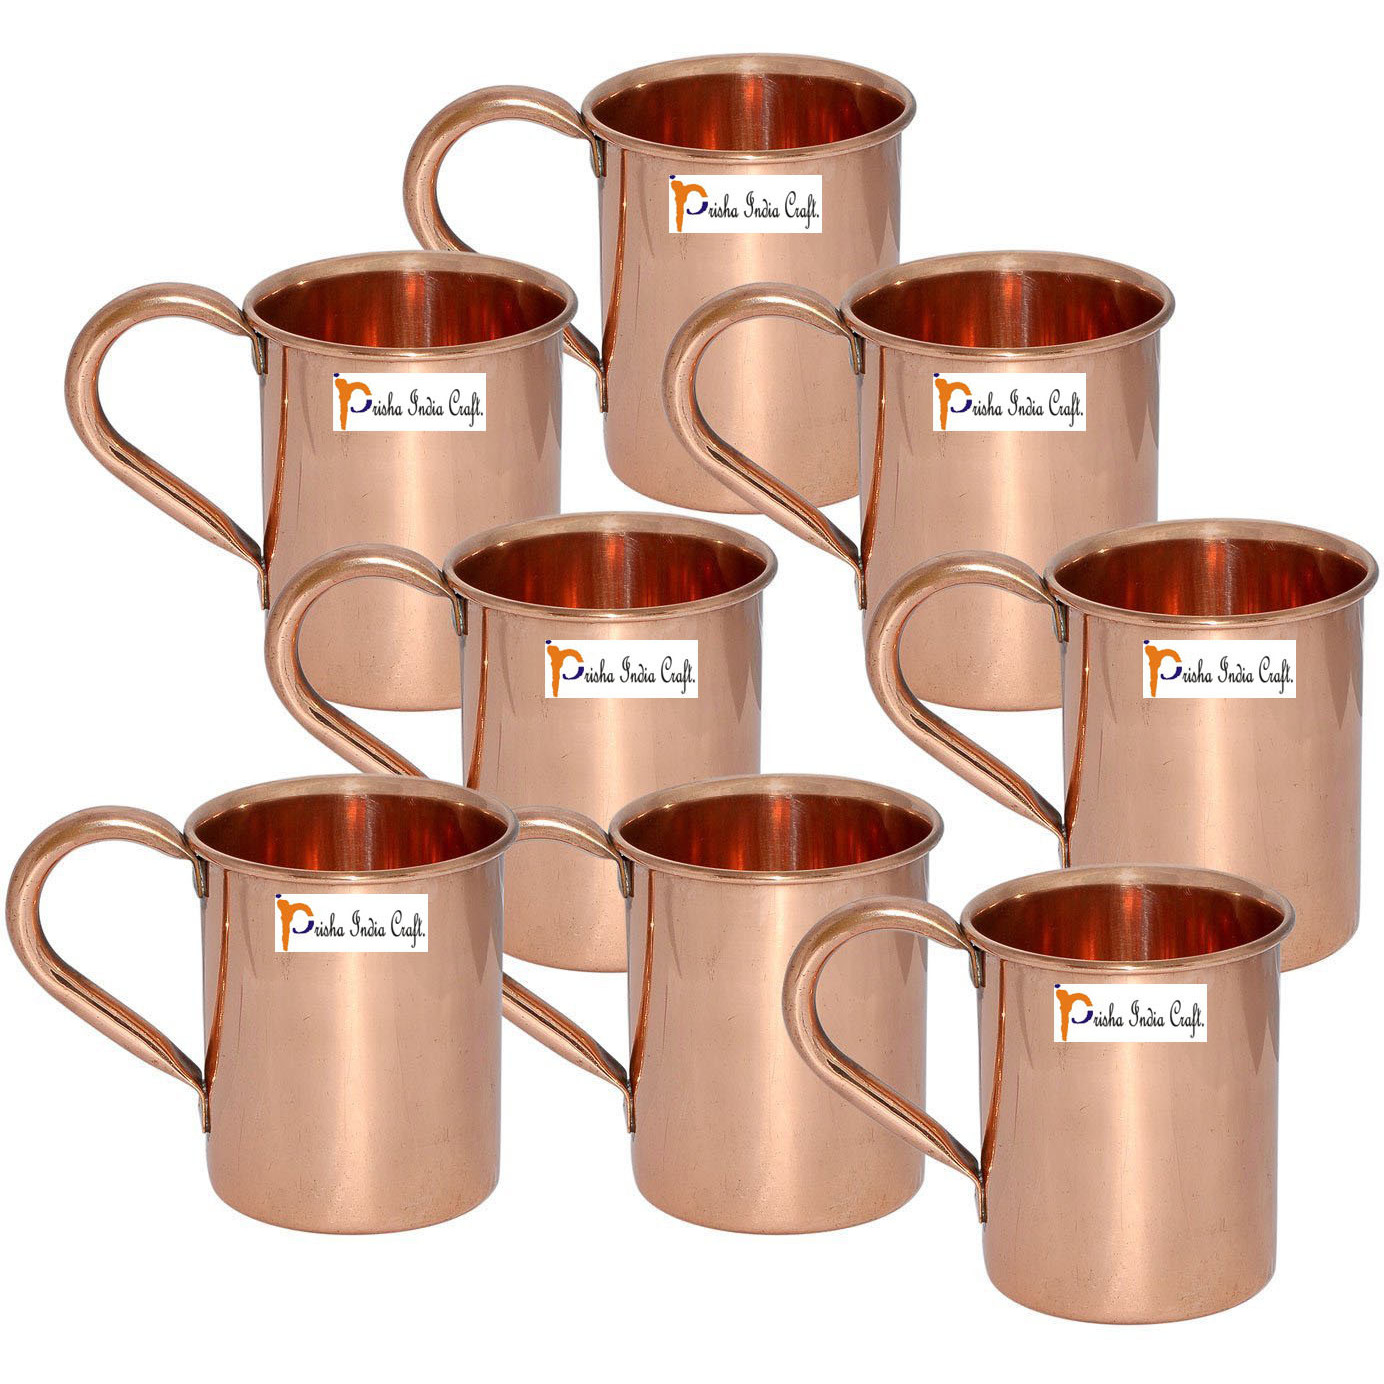 Set of 8 - Prisha India Craft B. Copper Mug for Moscow Mules 450 ML / 15 oz - 100% pure copper - Lacquered Finish Mule Cup, Moscow Mule Cocktail Cup, Copper Mugs, Cocktail Mugs with No Inner Linings